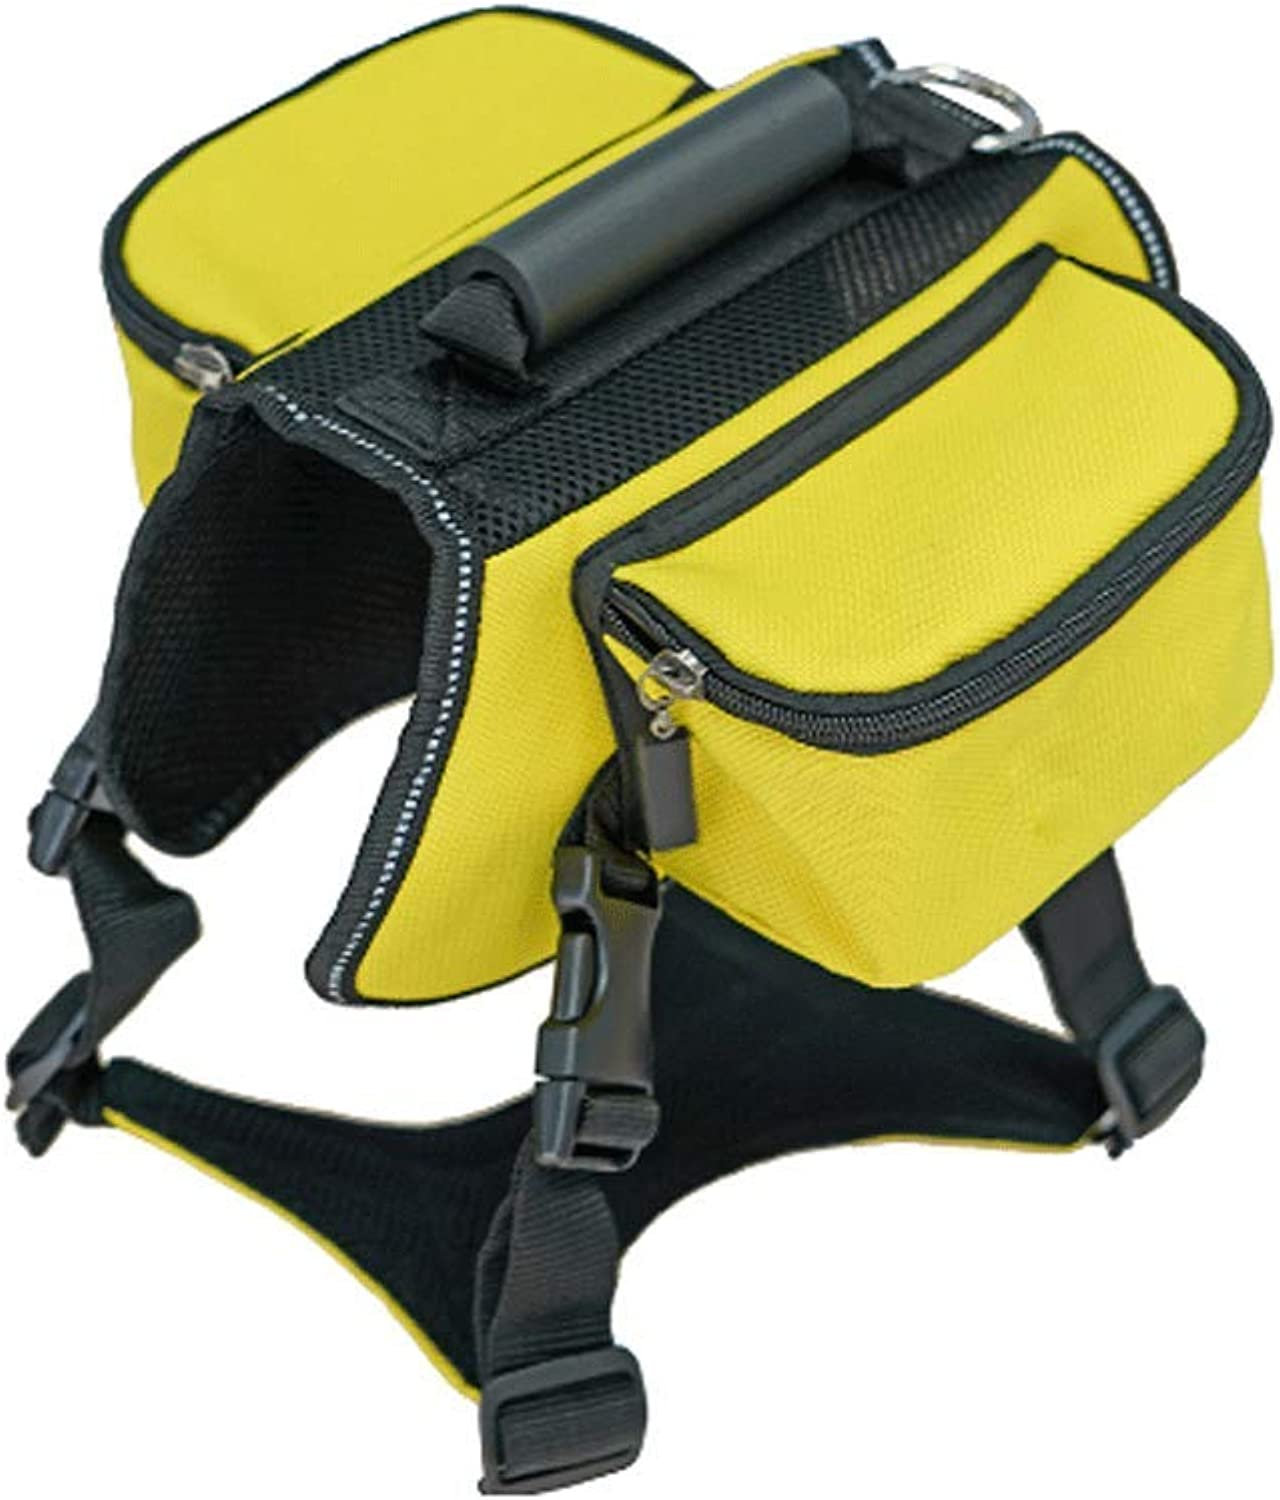 GJ Pets Out Travel From Backpacks Large Dogs Outdoor Selfselling Bags Towable Backpacks (color   Yellow, Size   Xl)